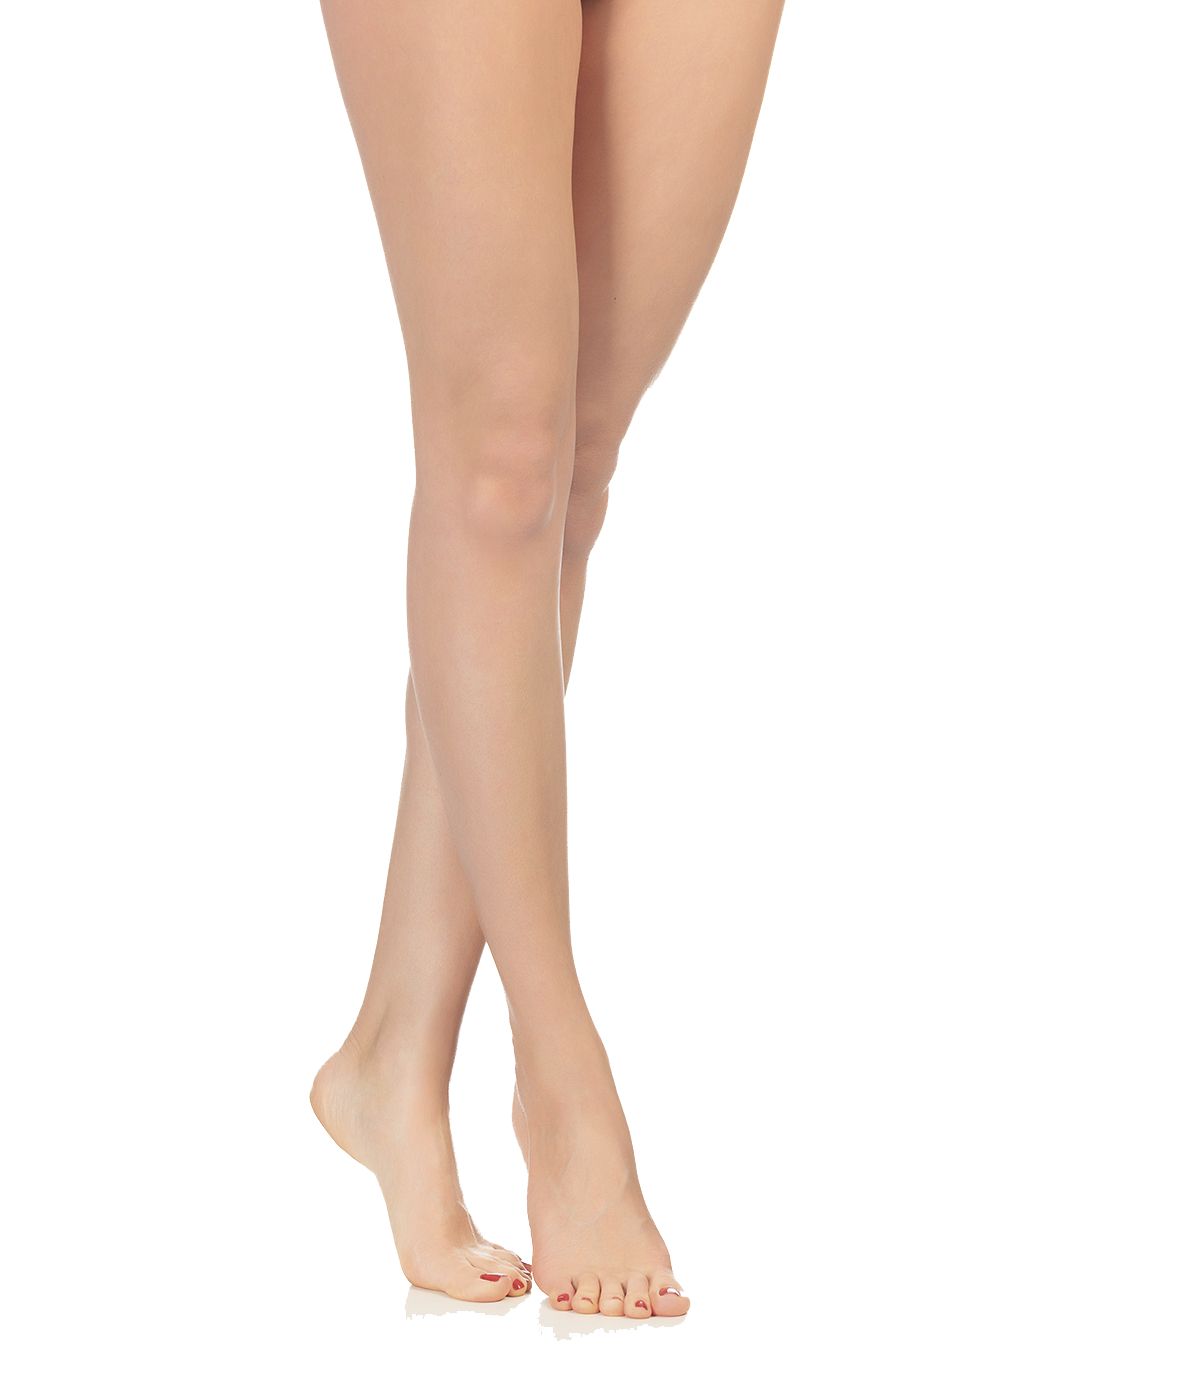 black and white stock Female leg png hd. Legs transparent